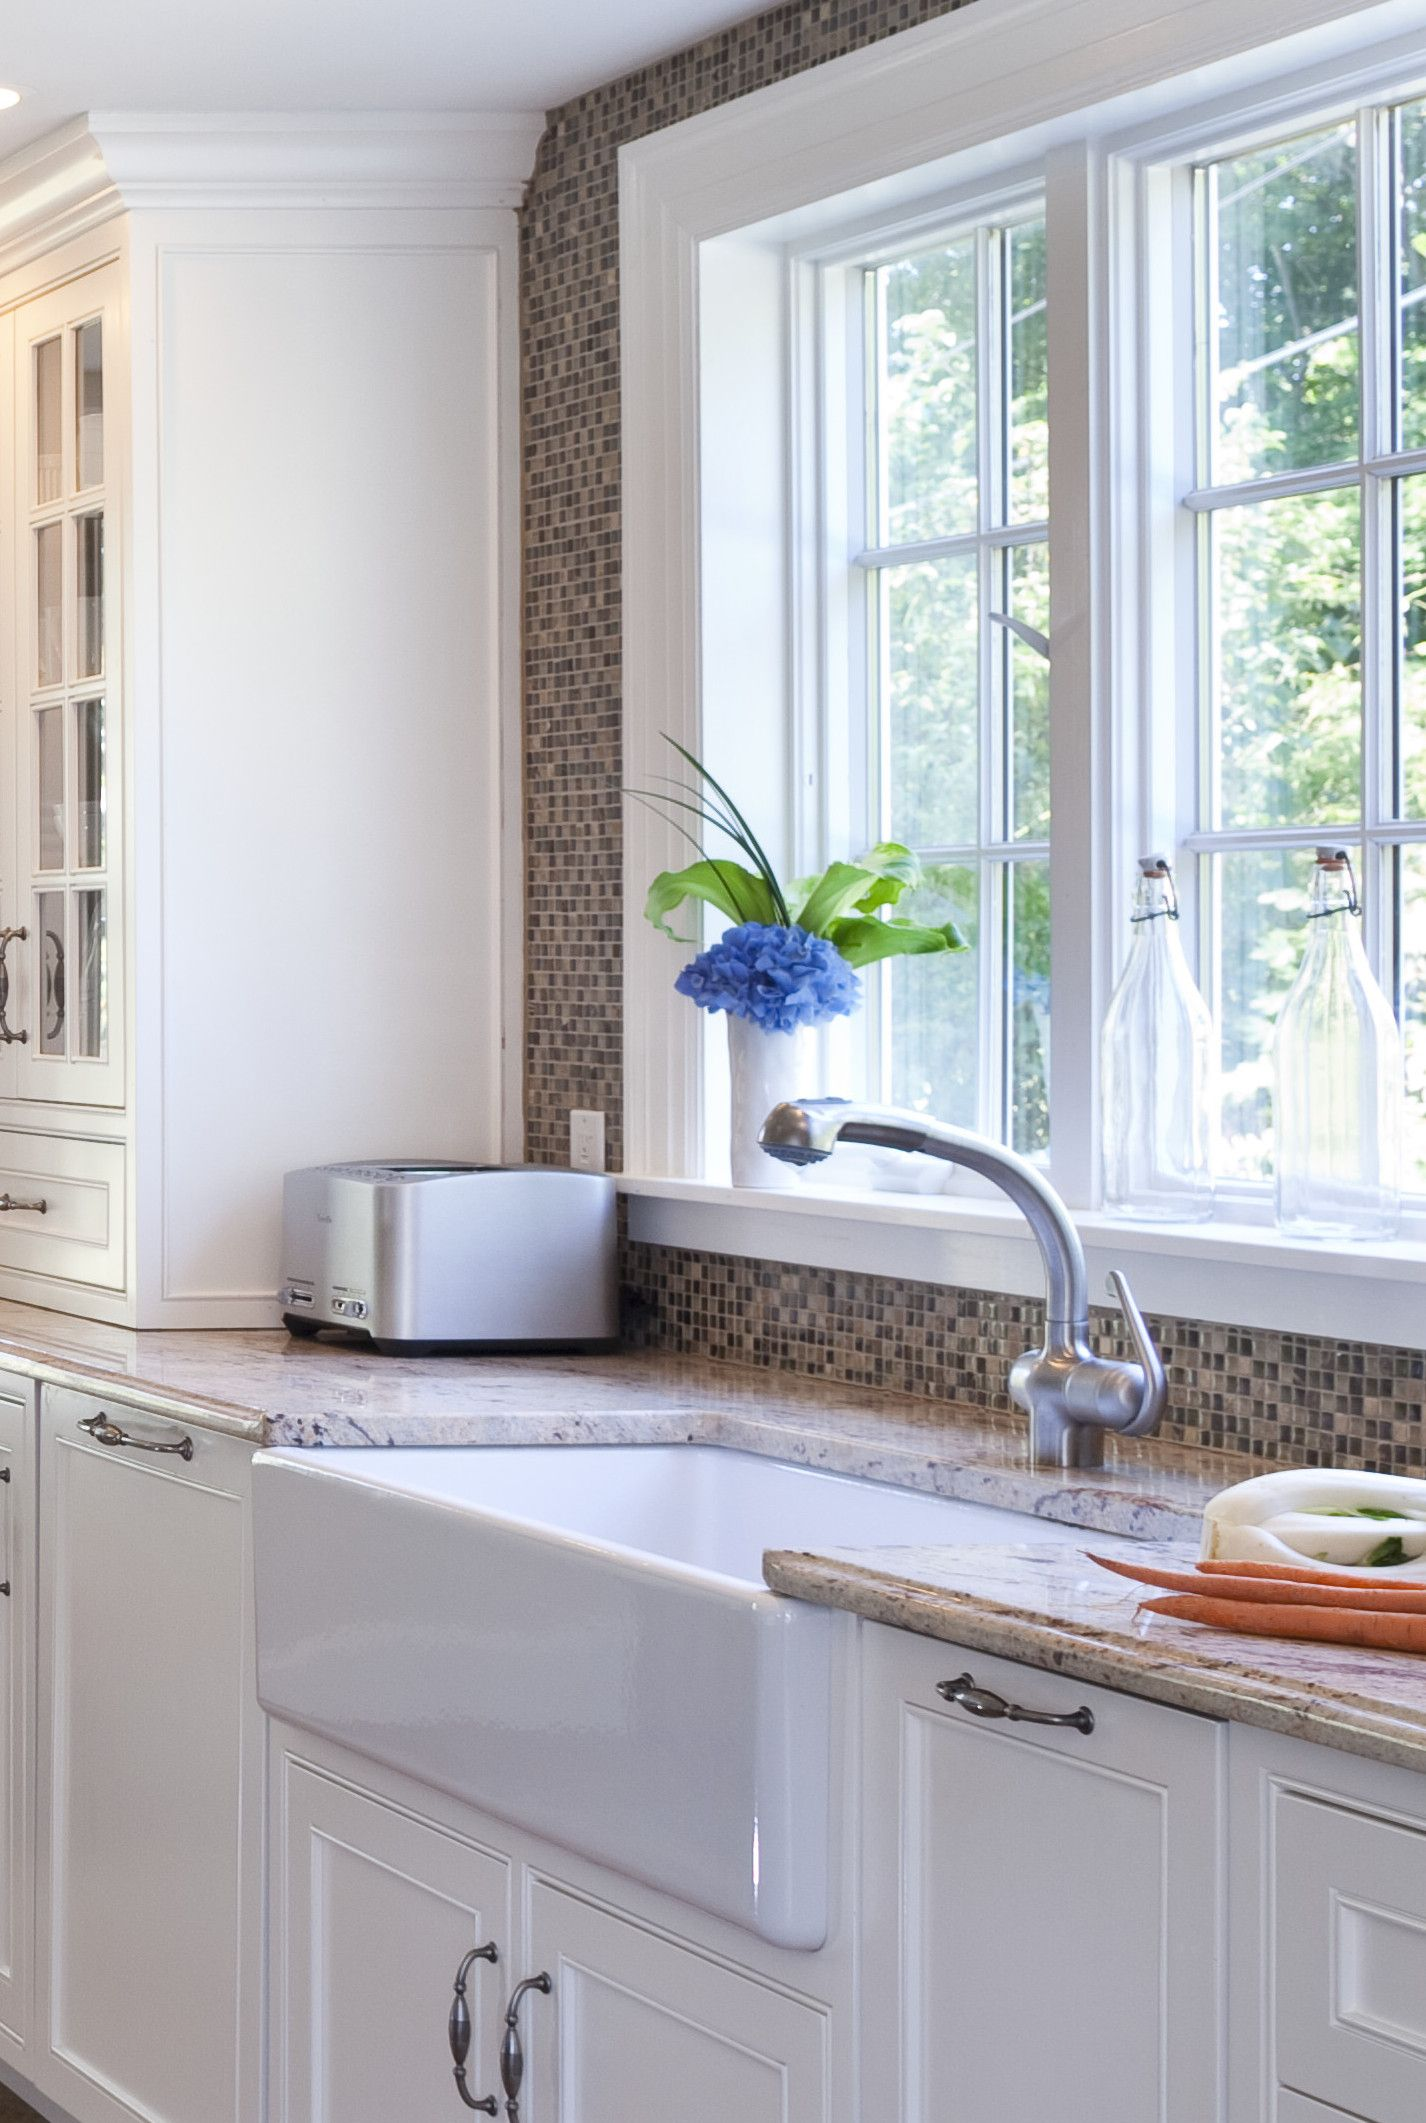 large white porcelain farmhouse sink makes wash up breeze this crisp glass tile also stainless steel stove and range provides contemporary touch